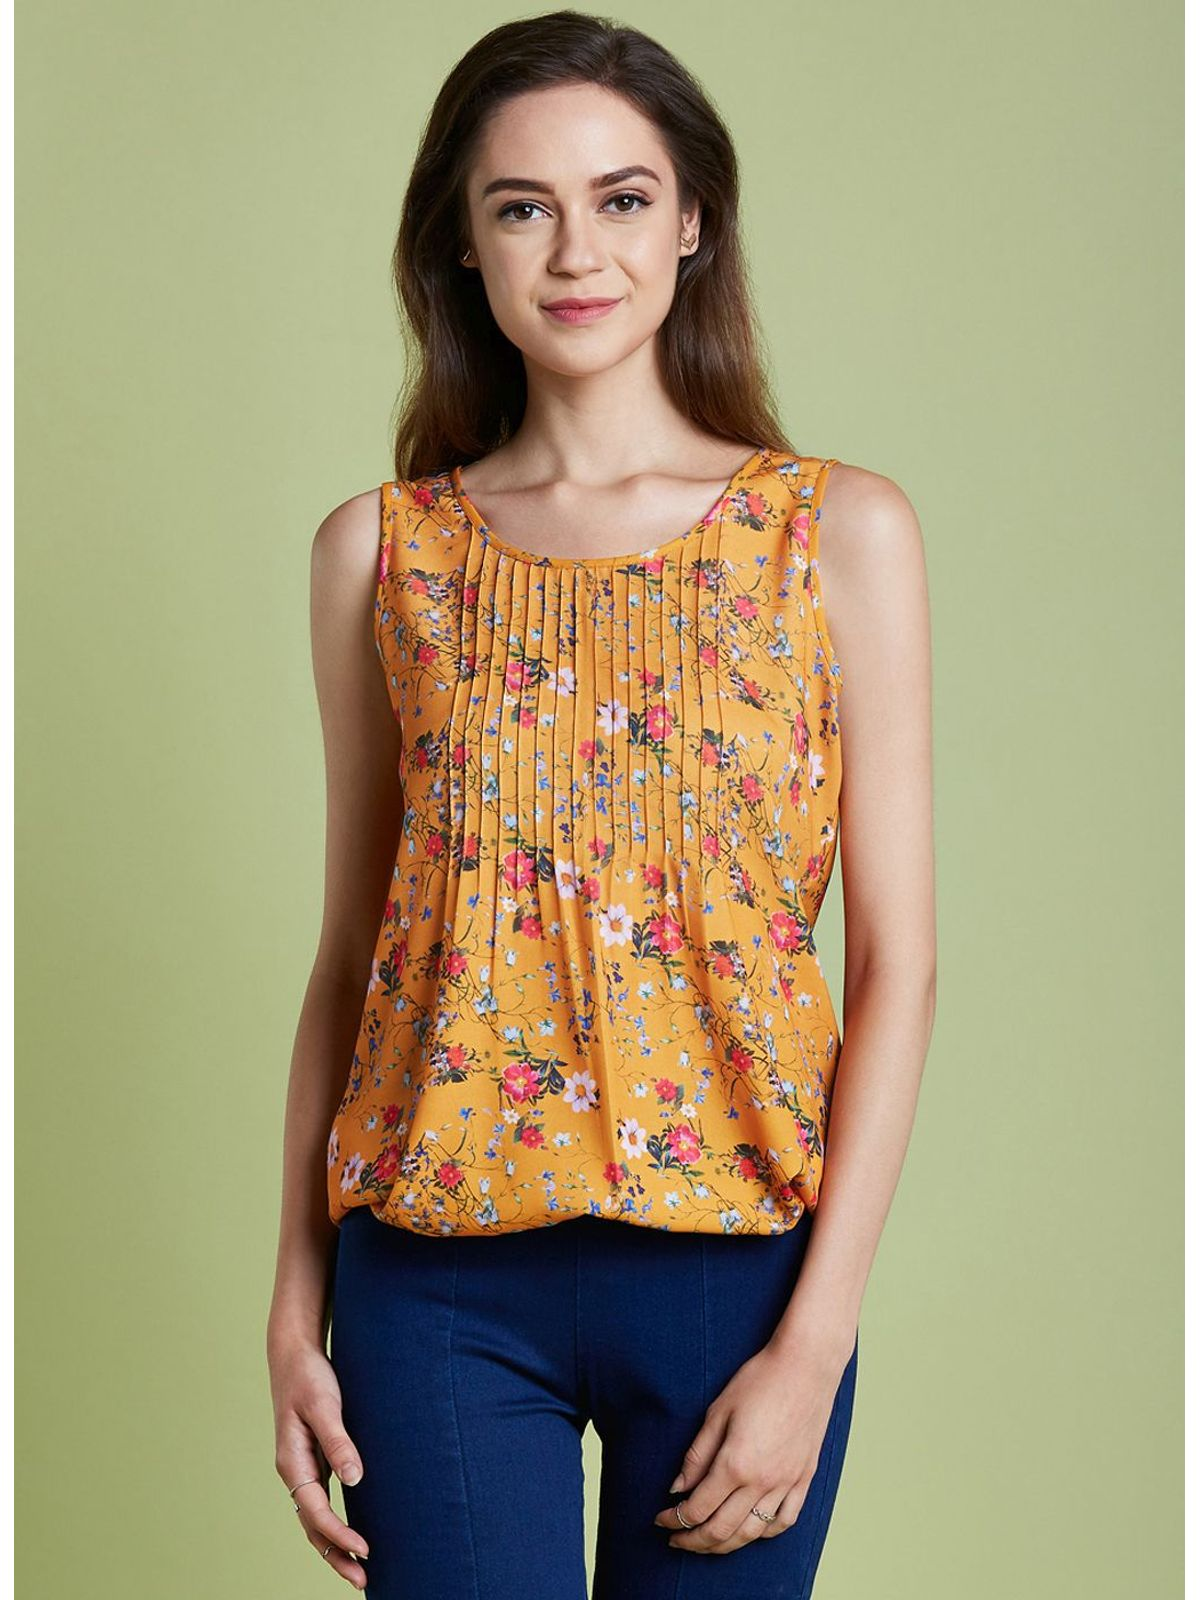 65d6fcd1556ef5 Orange Floral Sleeveless Top ...